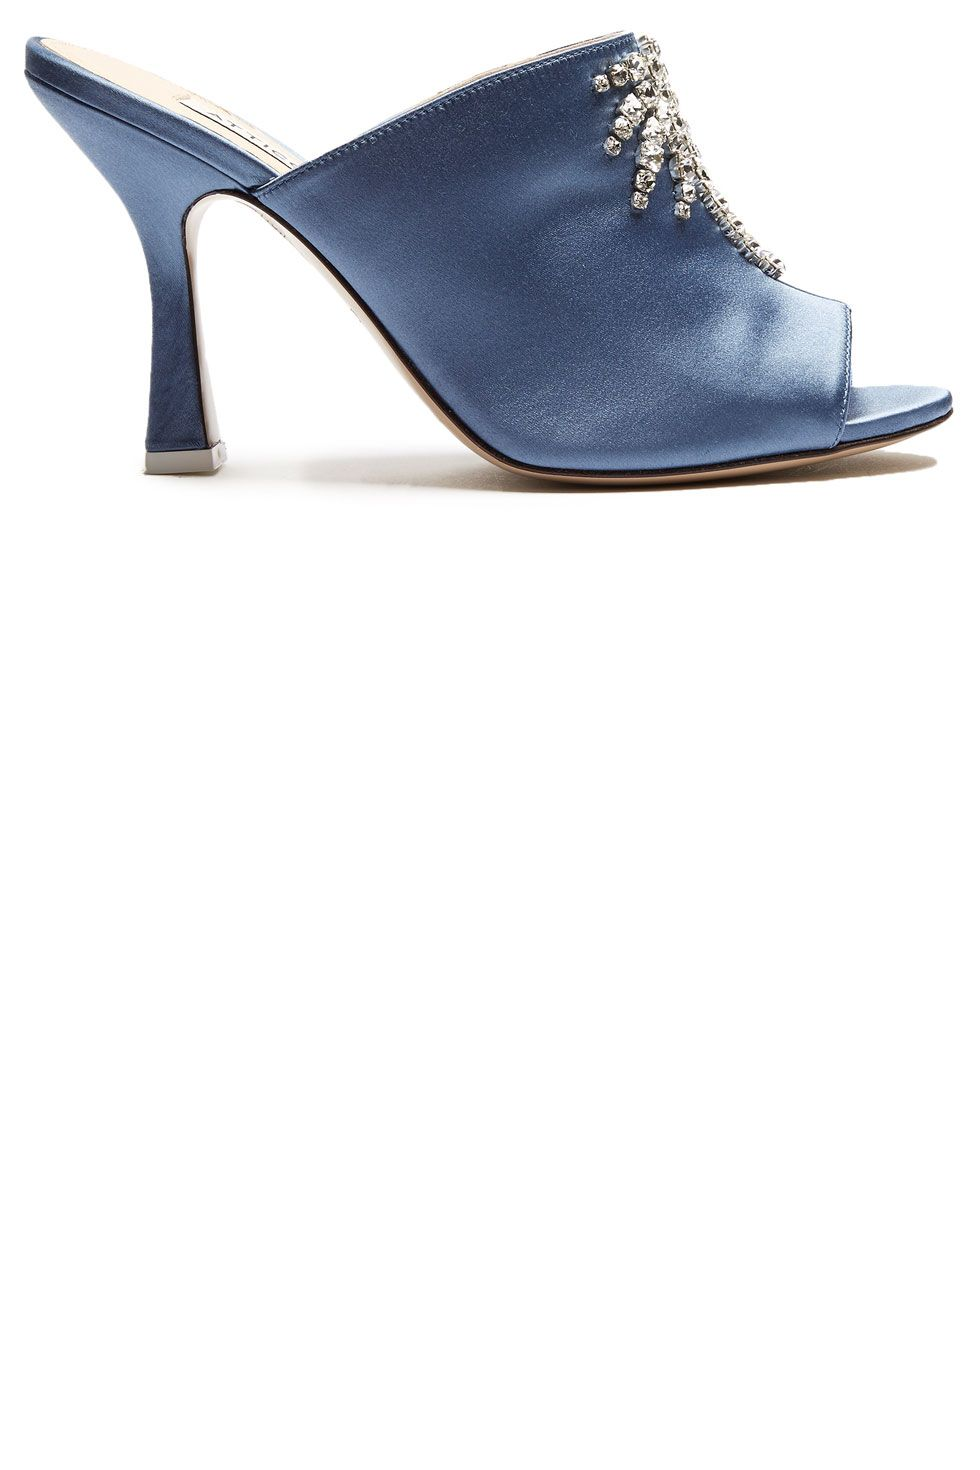 """<p>""""Pamela"""" crystal-embellised mules, $790, <a href=""""http://www.matchesfashion.com/products/Attico-Pamela-crystal-embellished-satin-mules-1098225"""" target=""""_blank"""" data-tracking-id=""""recirc-text-link"""">matchesfashion.com</a>.</p>"""